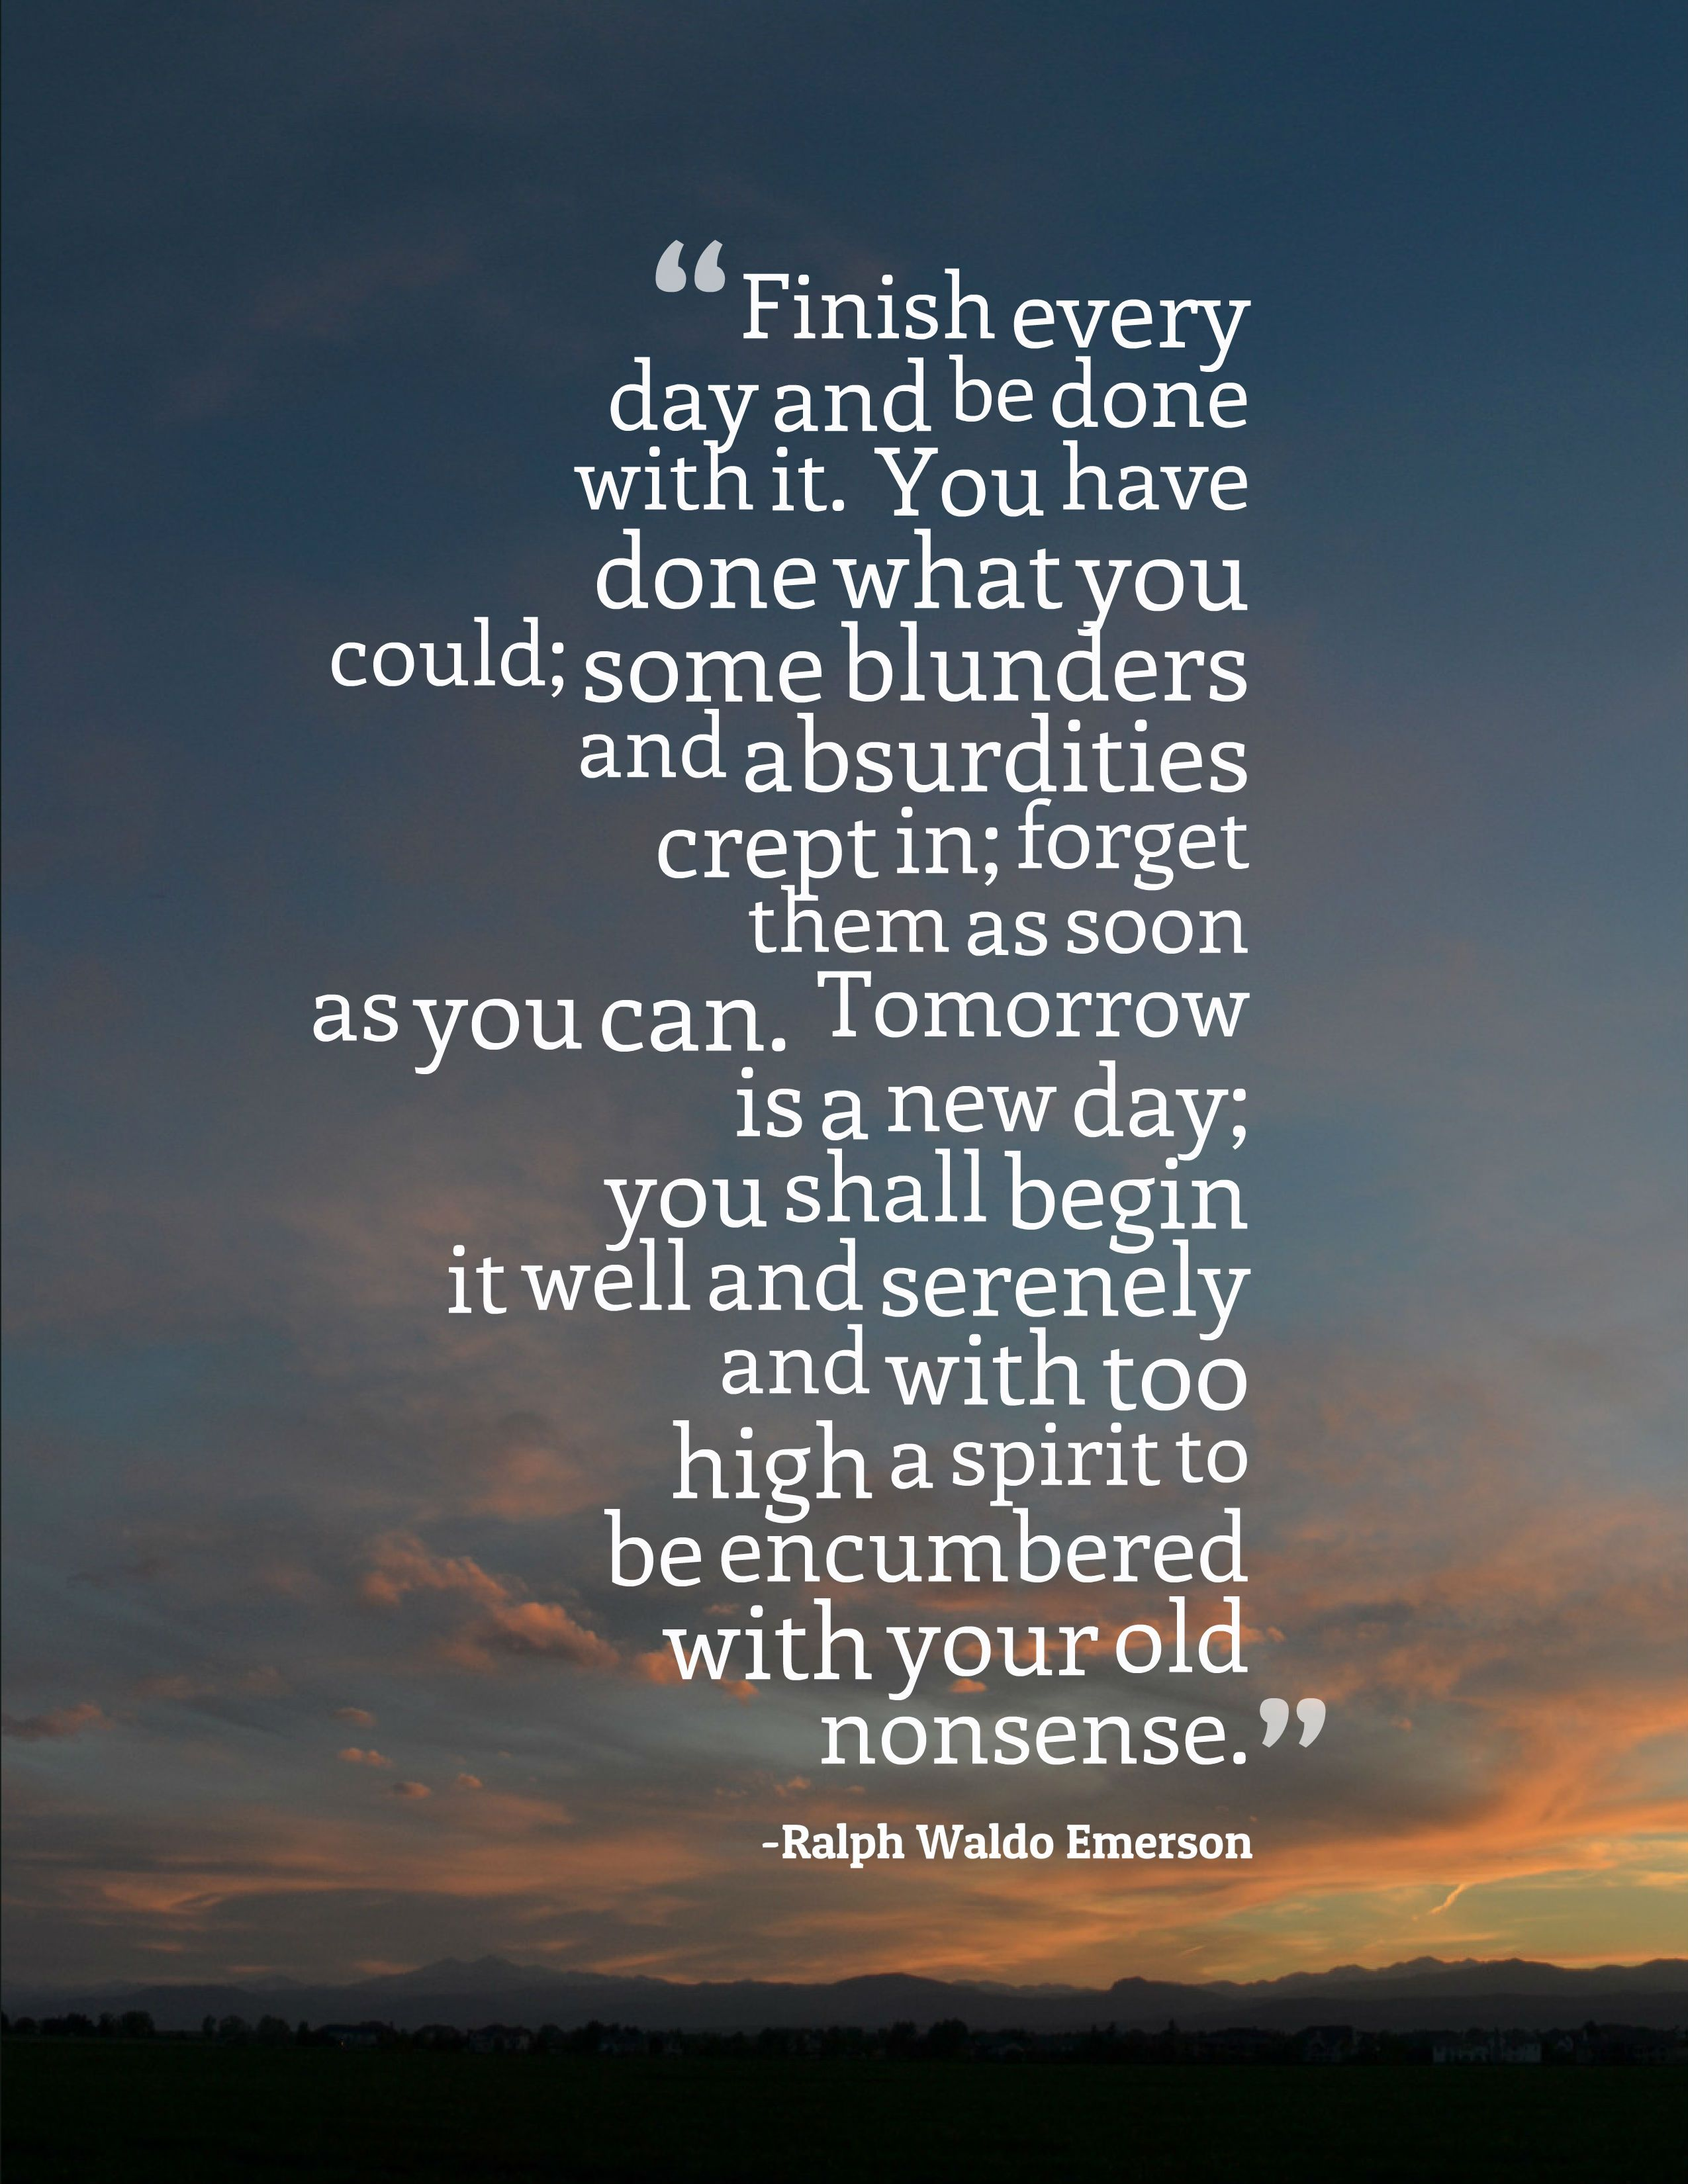 Emerson finish every day and be done with it